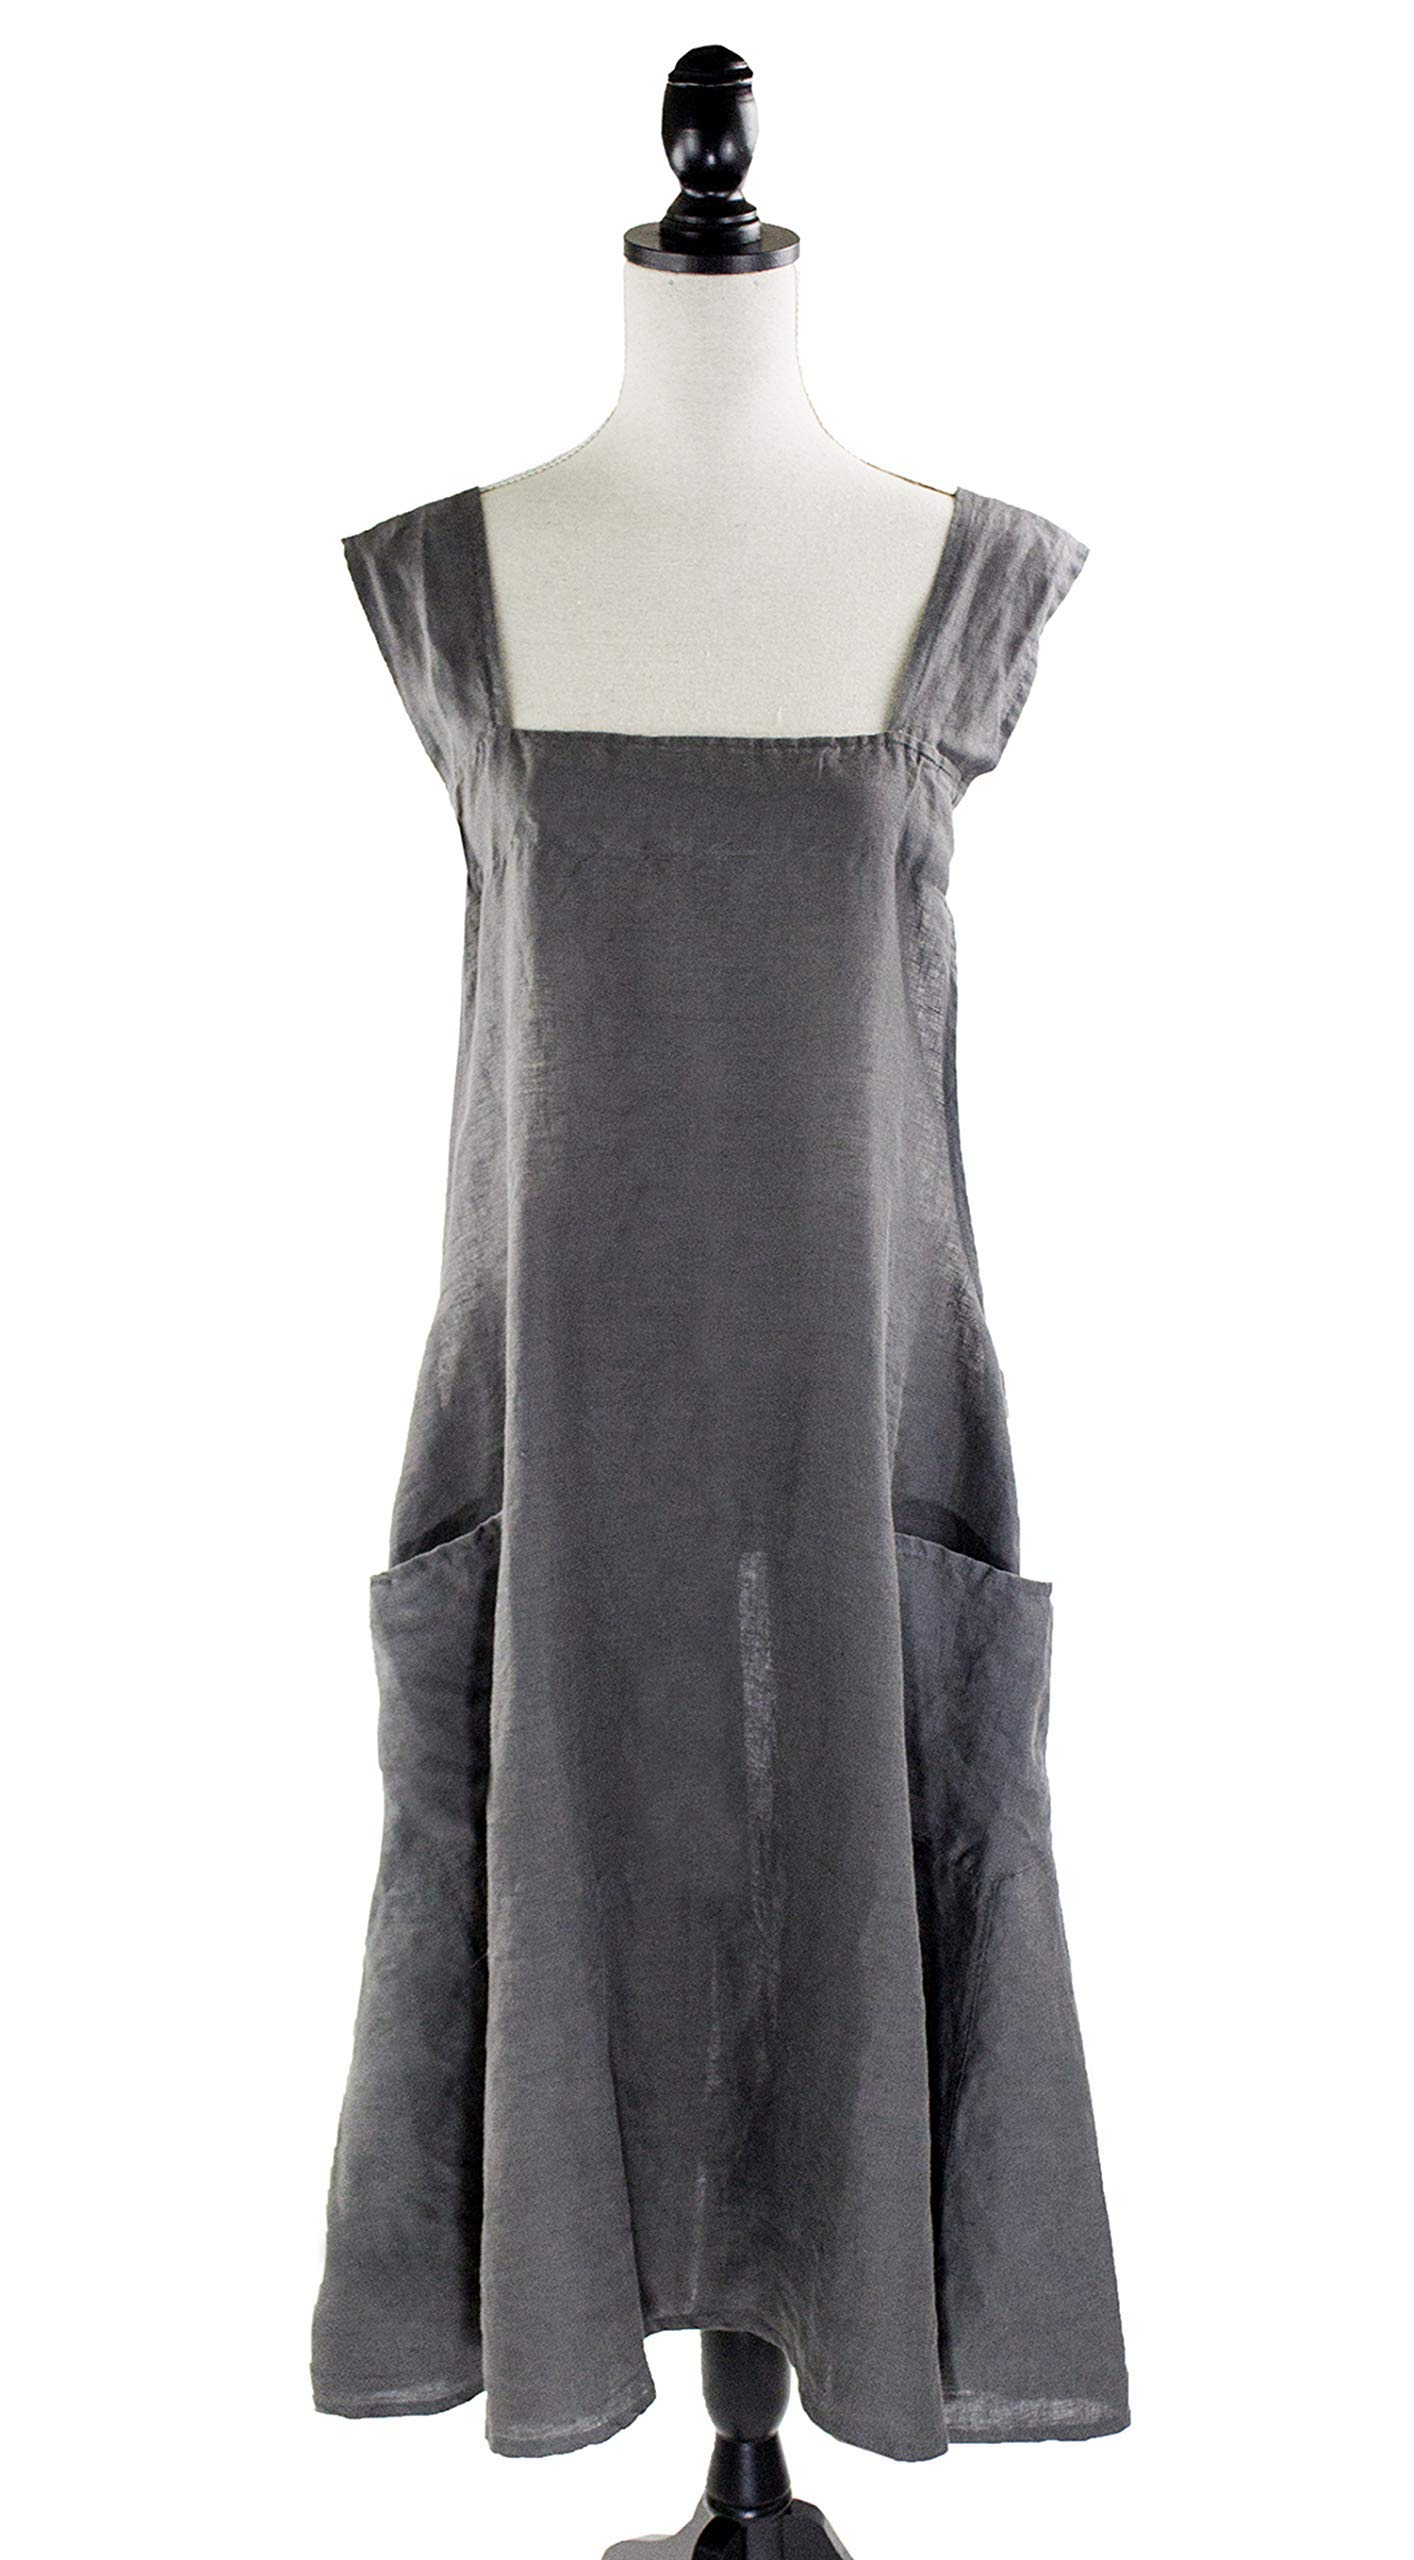 Fennco Styles Solid Criss Cross Back Apron Pure 100% Linen Cooking Kitchen Apron - 8 Colors (Slate) by fenncostyles.com